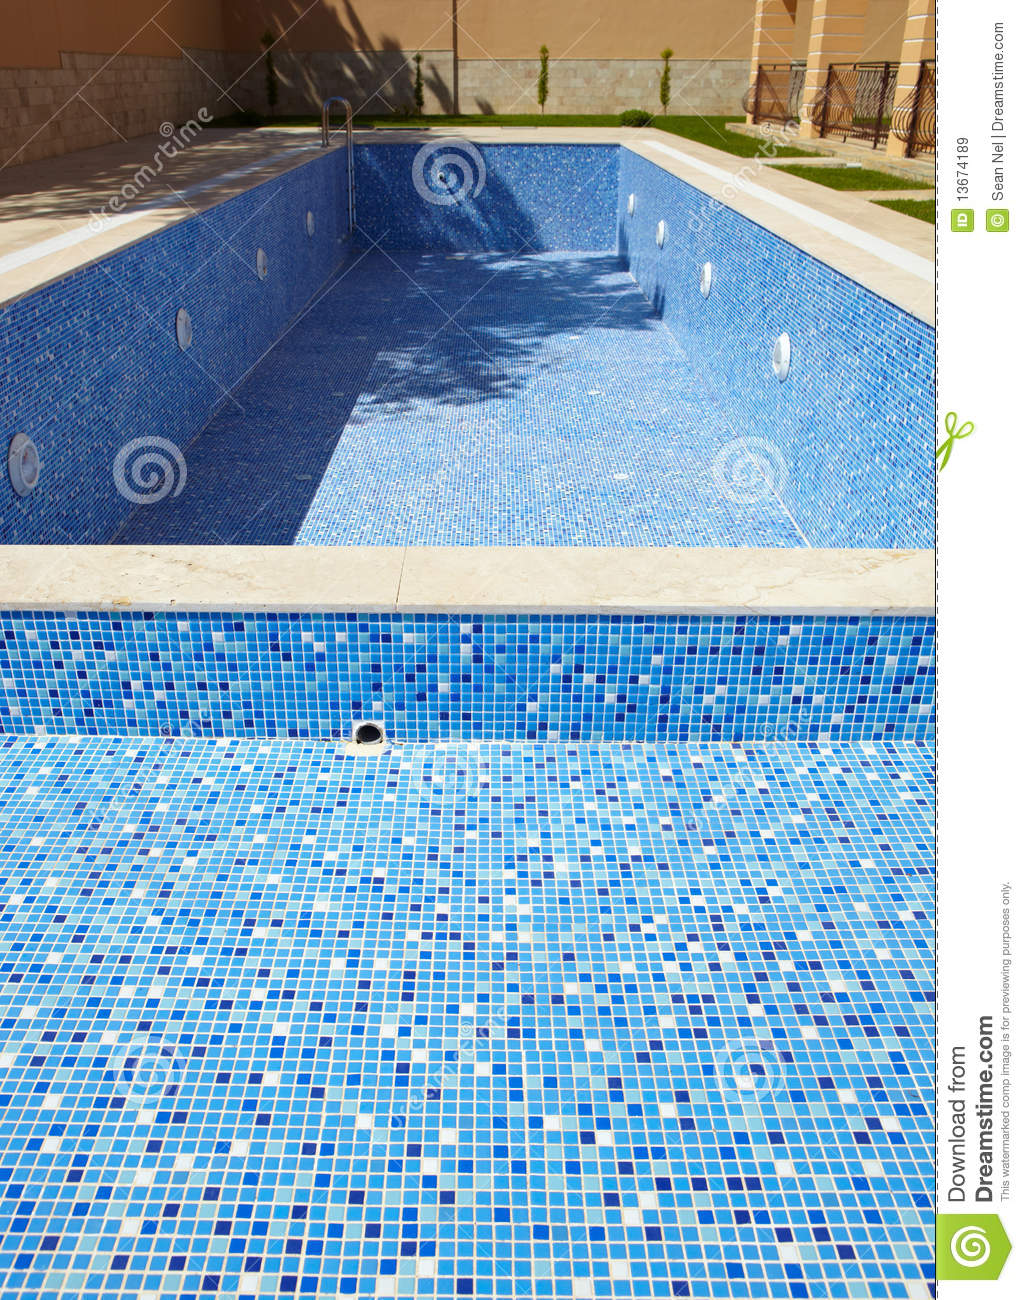 Empty swimming pool royalty free stock images image for Empty swimming pool